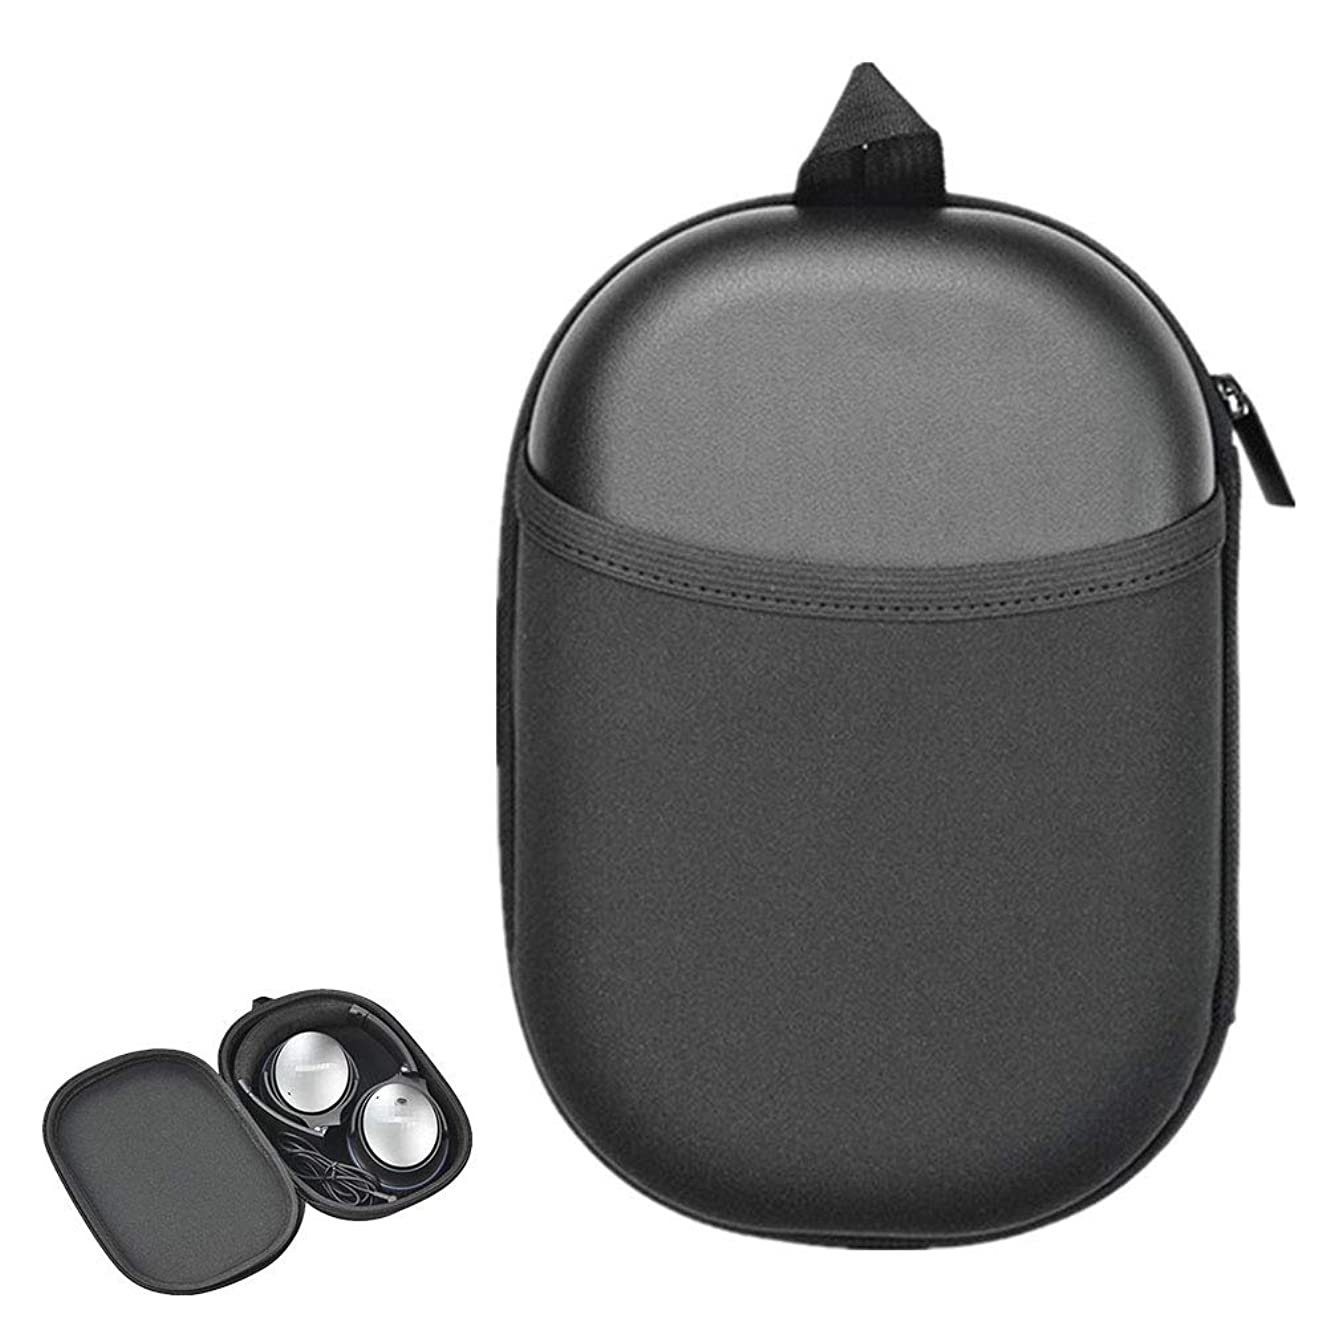 TopZK Headphone Hard Case Replacement for Bose QC35 (Series II), QC35, QC25, QC15 Wireless Bluetooth Headphone Headset Protective Travel Bag (Black)